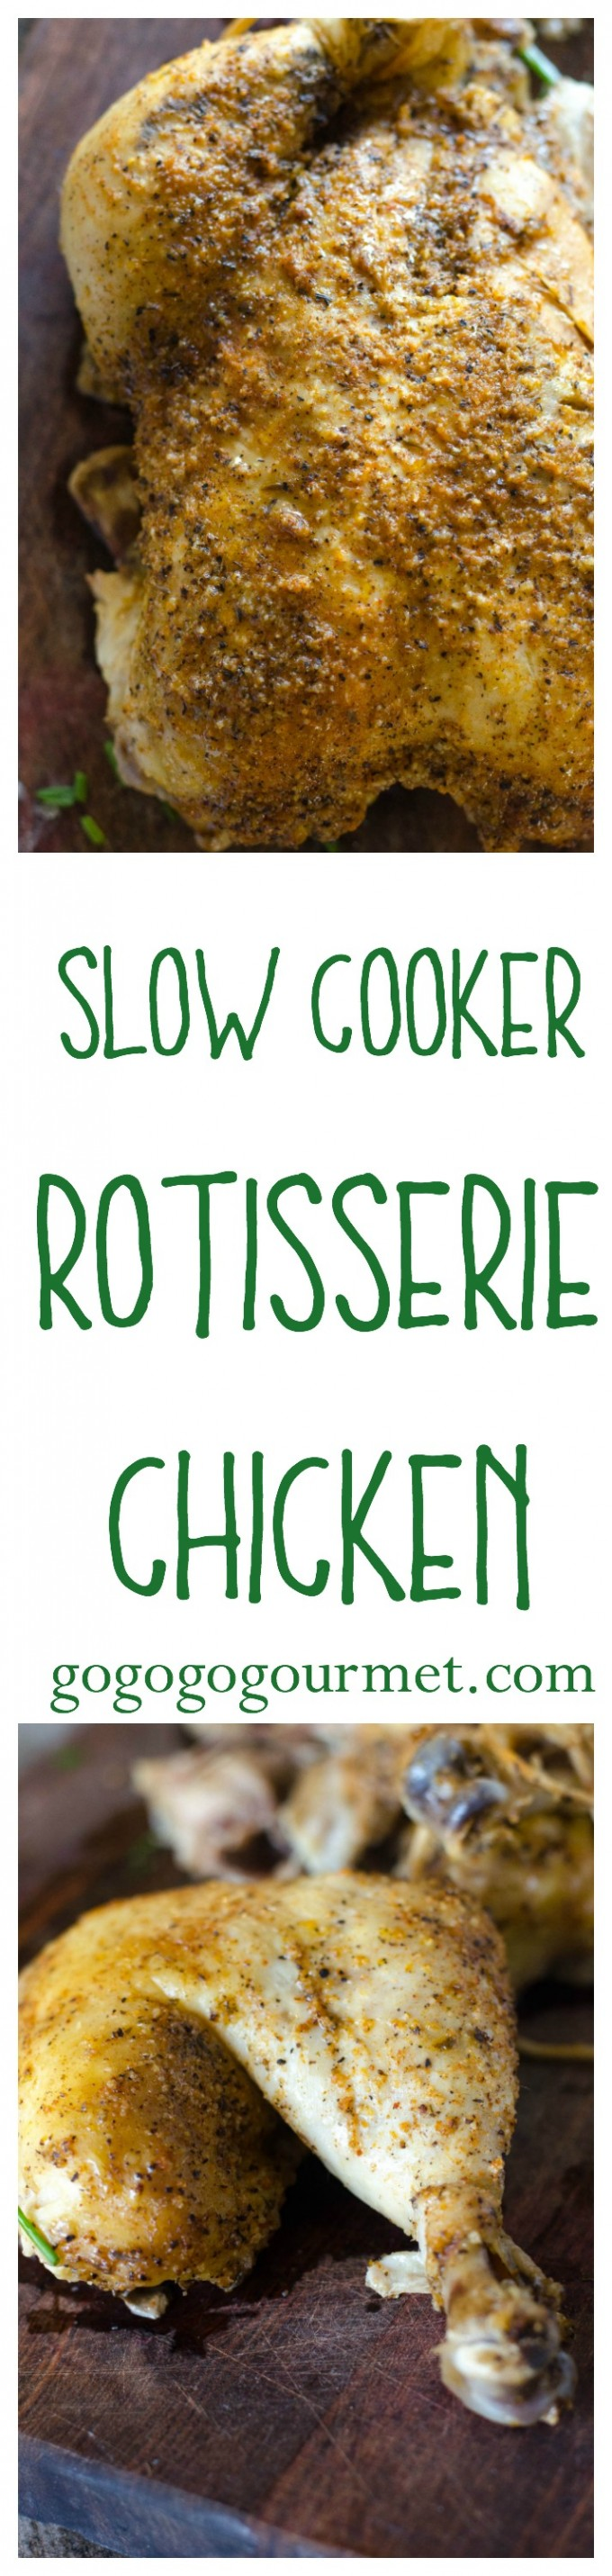 Simplify your weeknights. Take the guesswork out of dinner with this Slow Cooker Rotisserie Chicken. The crockpot makes it so easy! | Go Go Go Gourmet @Go Go Go Gourmet via @gogogogourmet